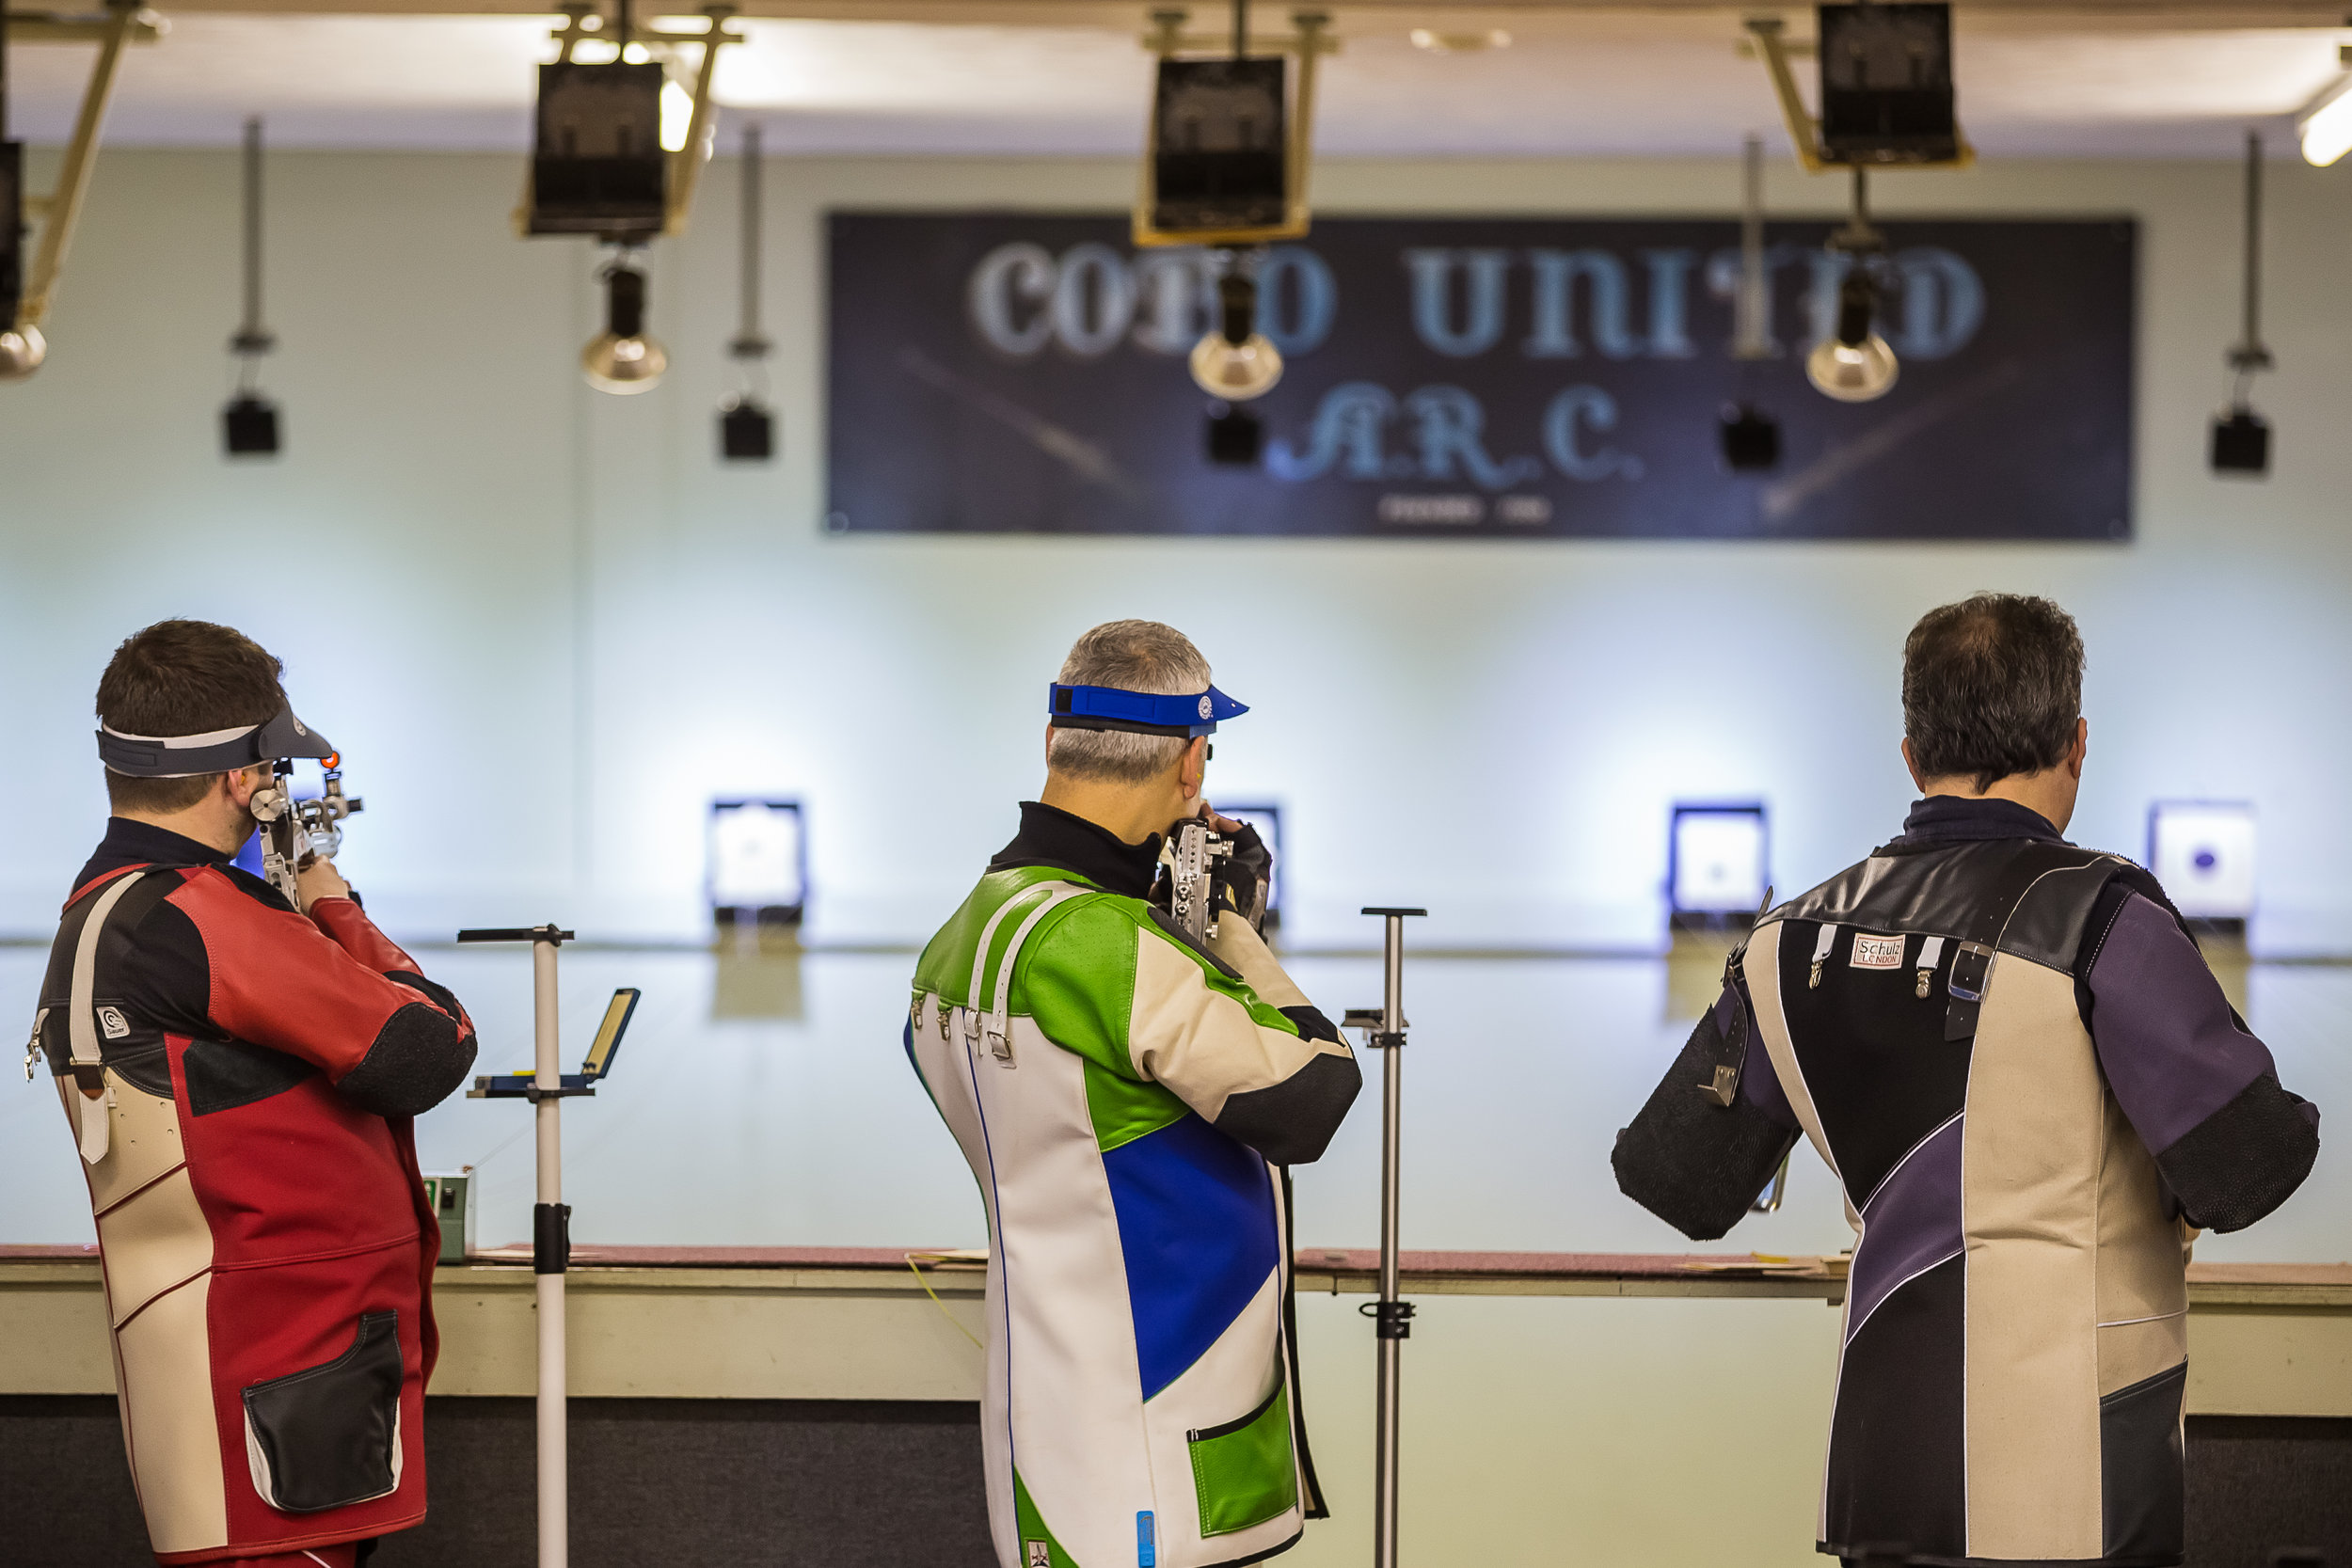 A few shots from the Cobo Air Rifle Open Saturday morning grouping...